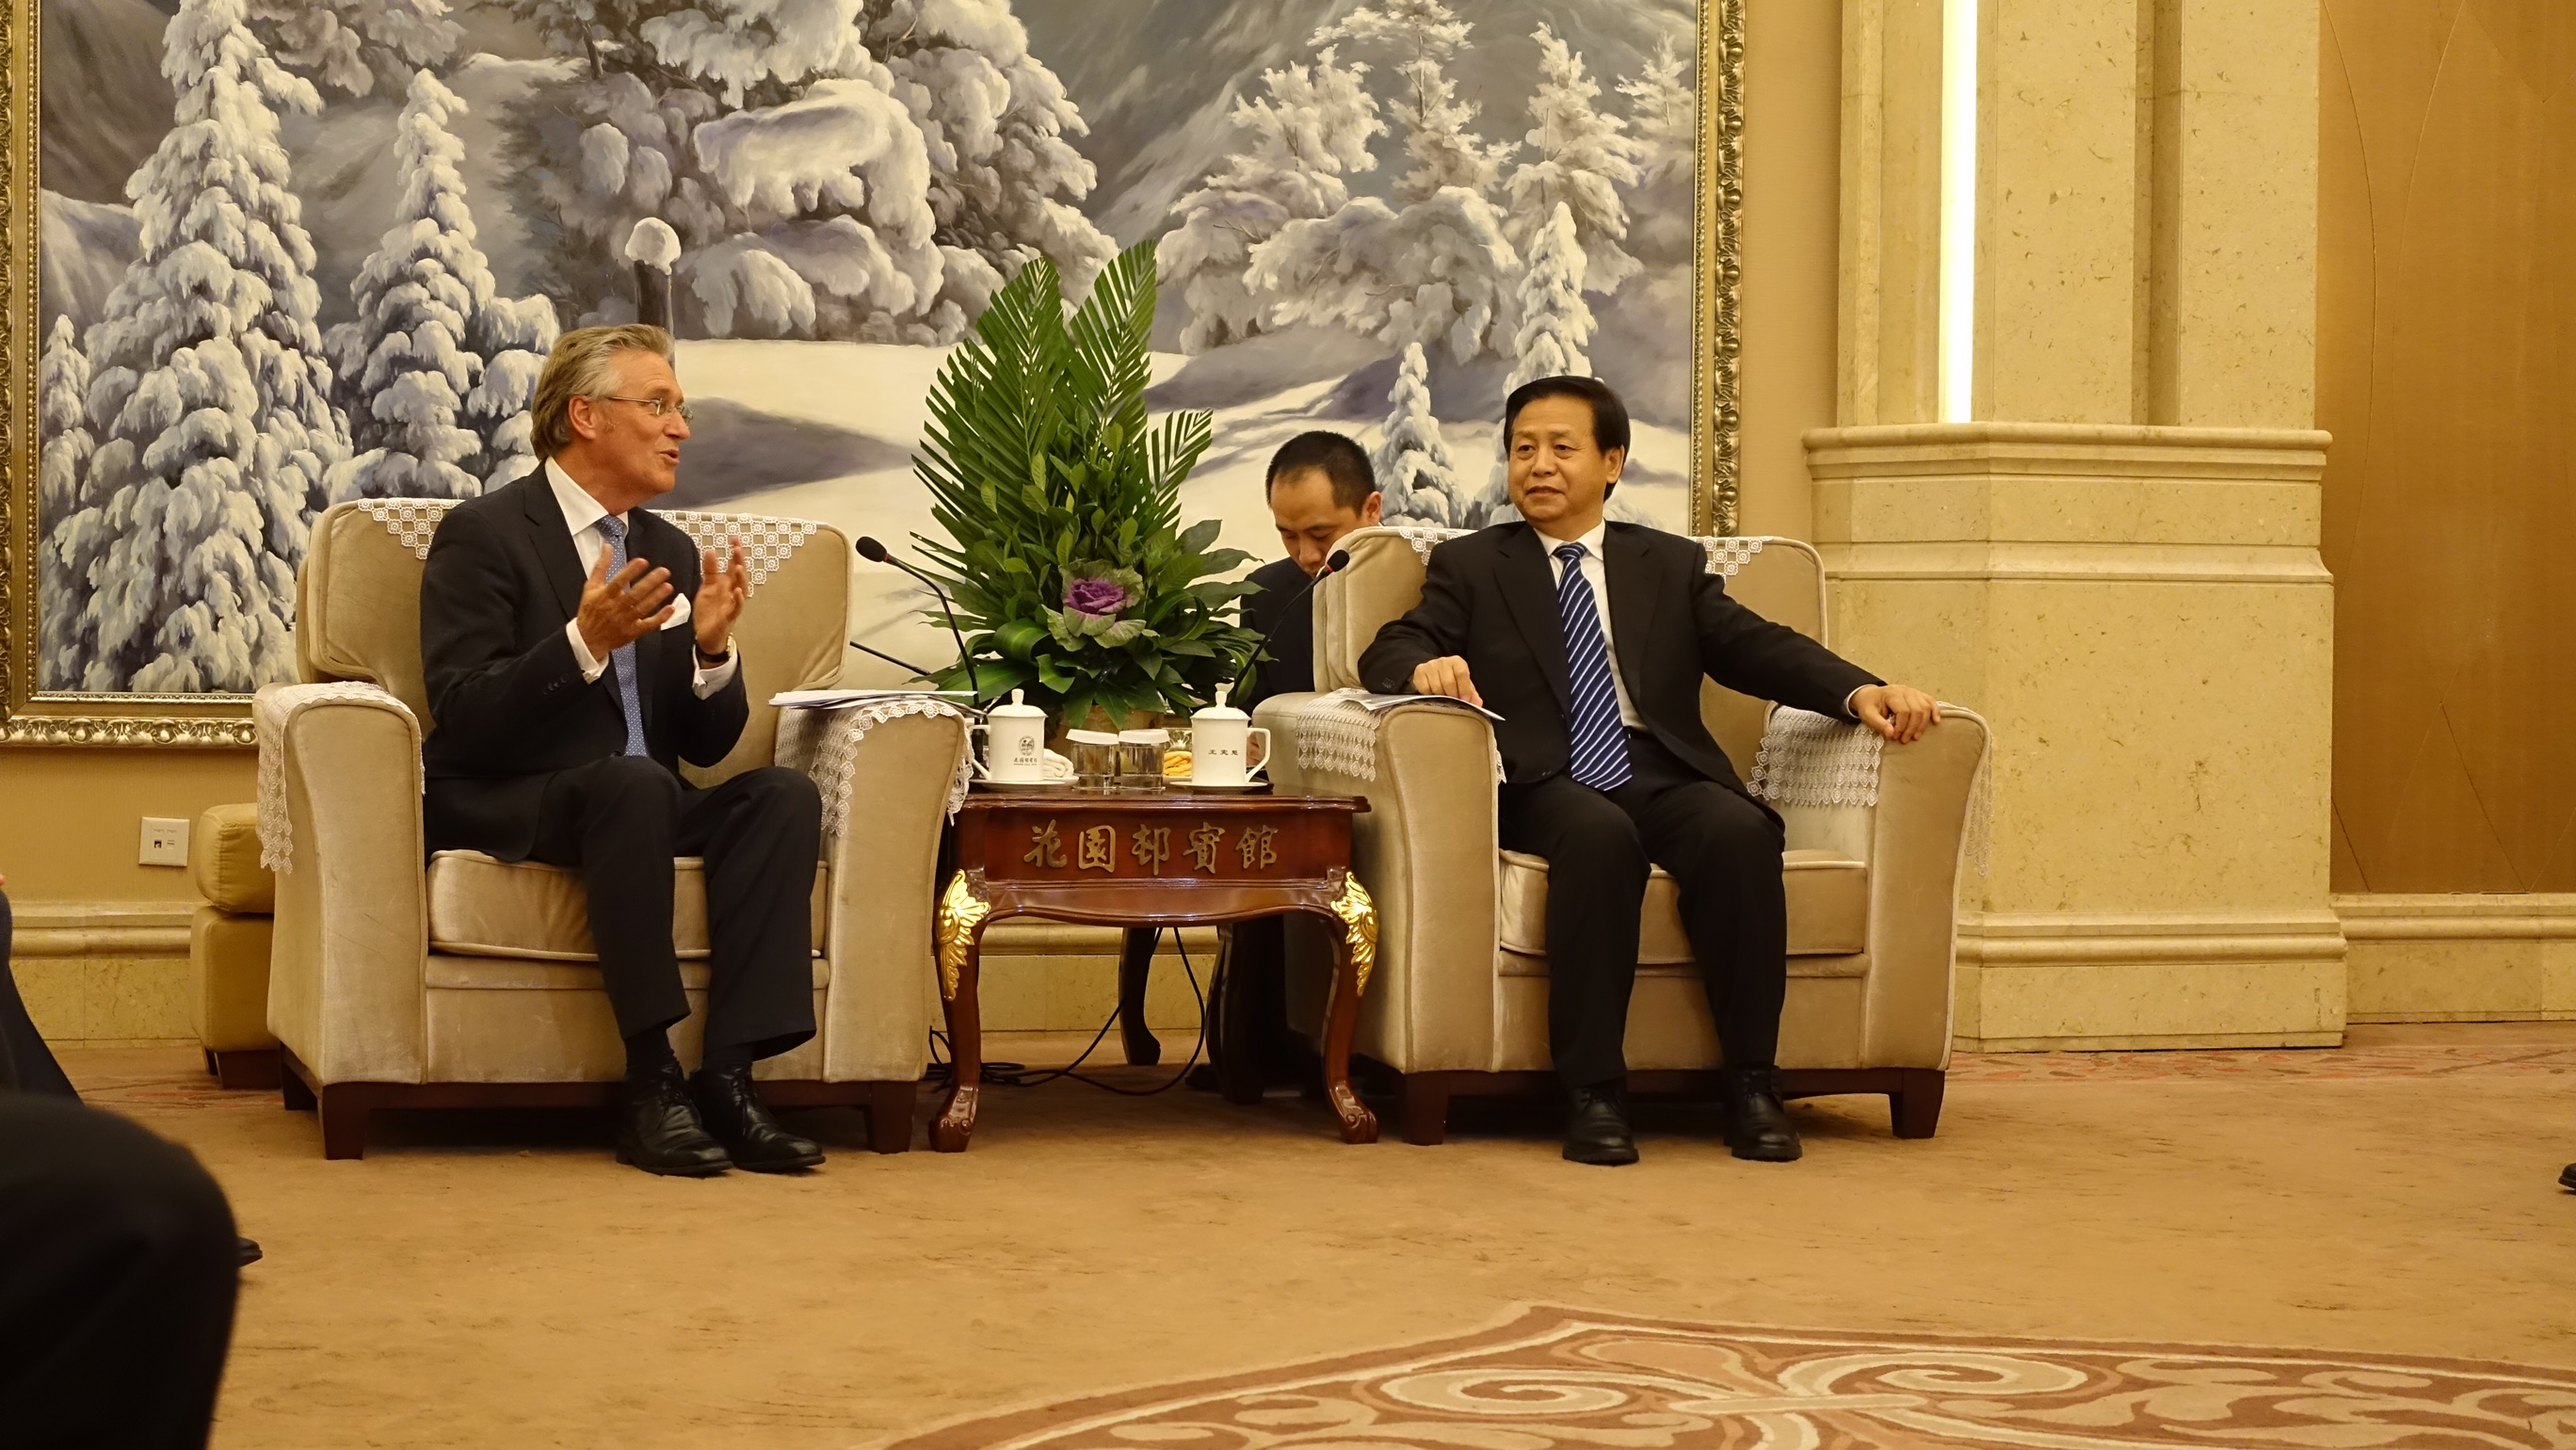 Haakman meeting with Heilongjiang Province